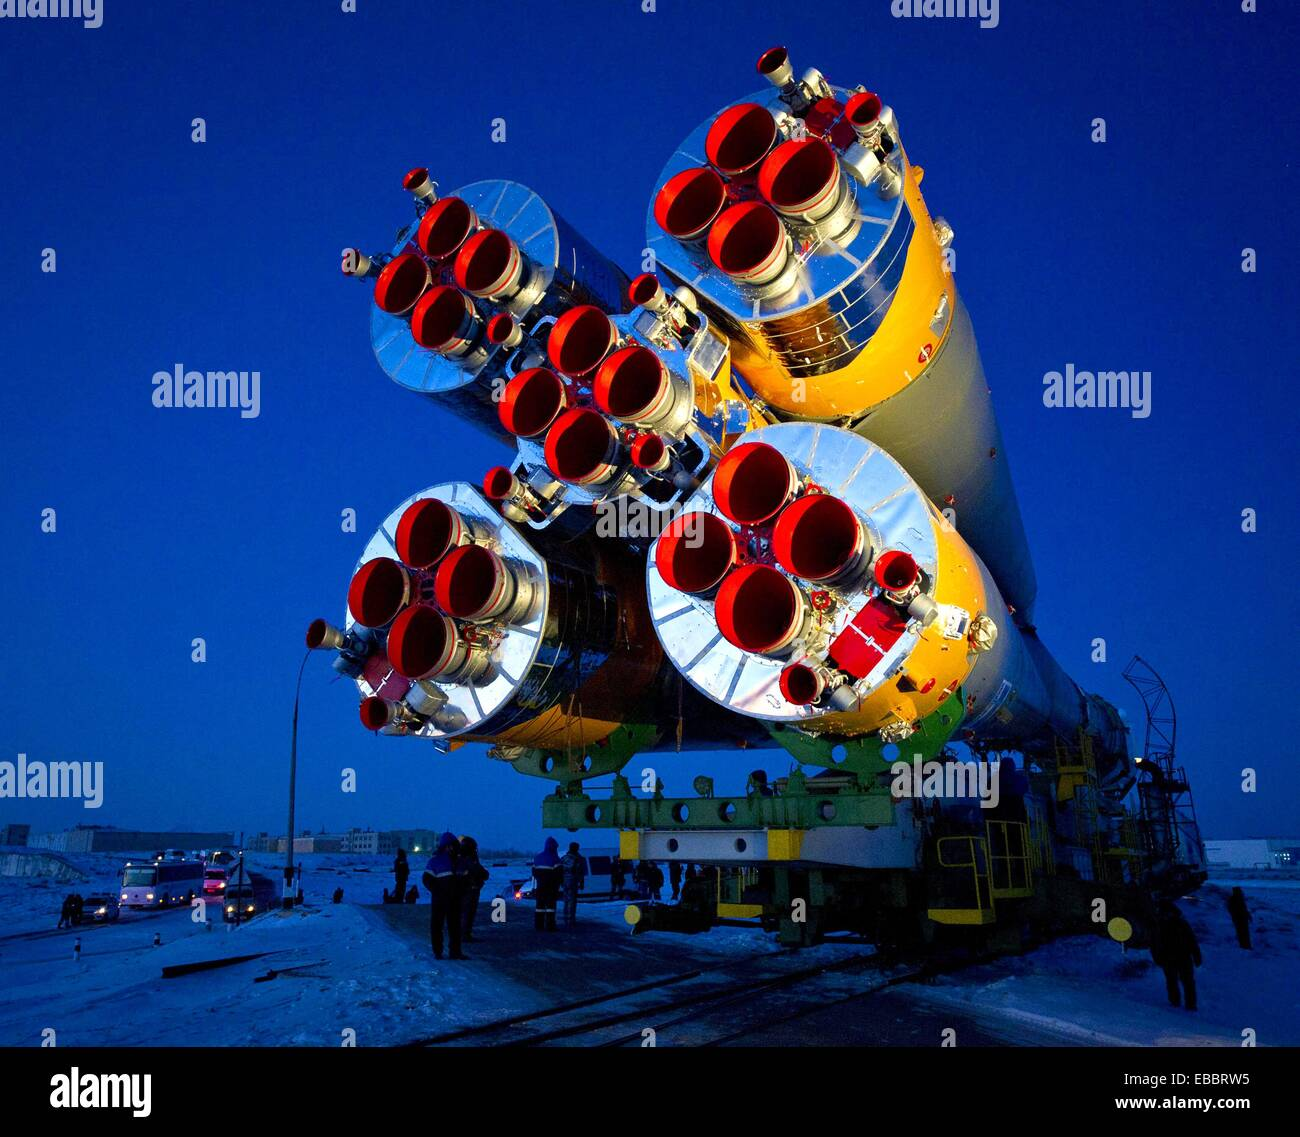 The Soyuz TMA-03M spacecraft is rolled out by train on its way to the launch pad at the Baikonur Cosmodrome, Kazakhstan, - Stock Image